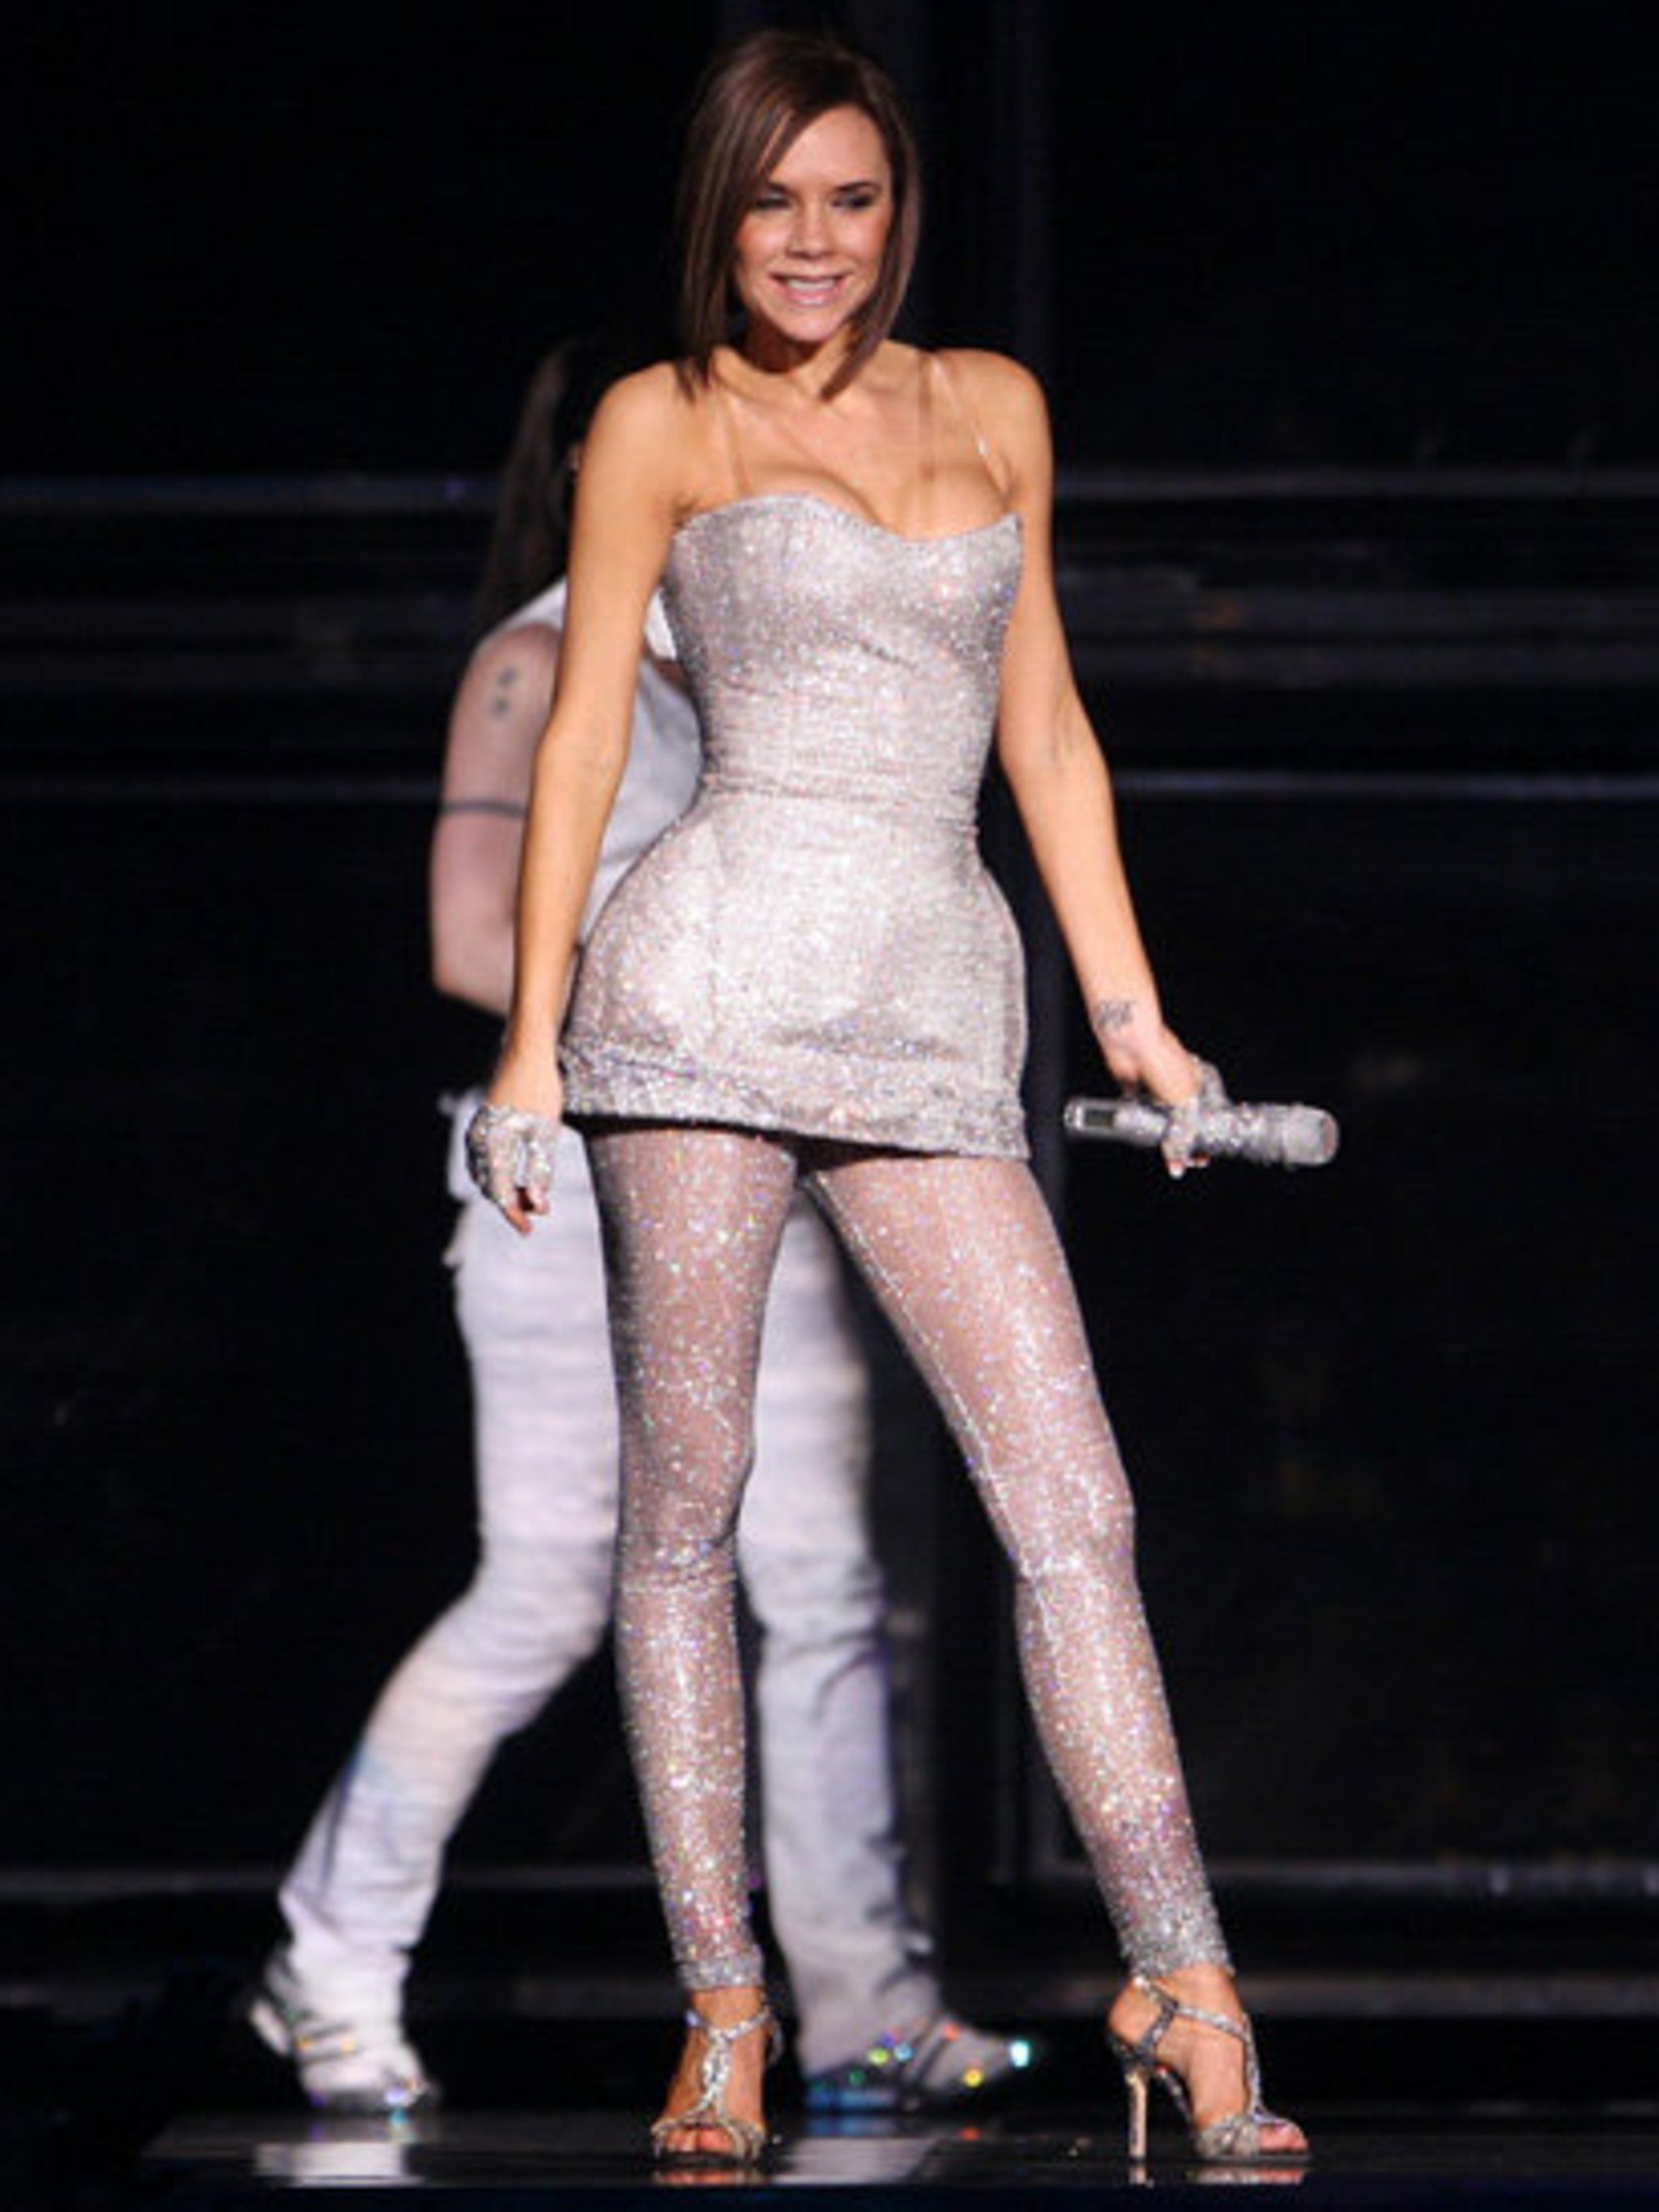 <p>Victoria Beckham onstage during the Spice Girls tour in 2008</p>